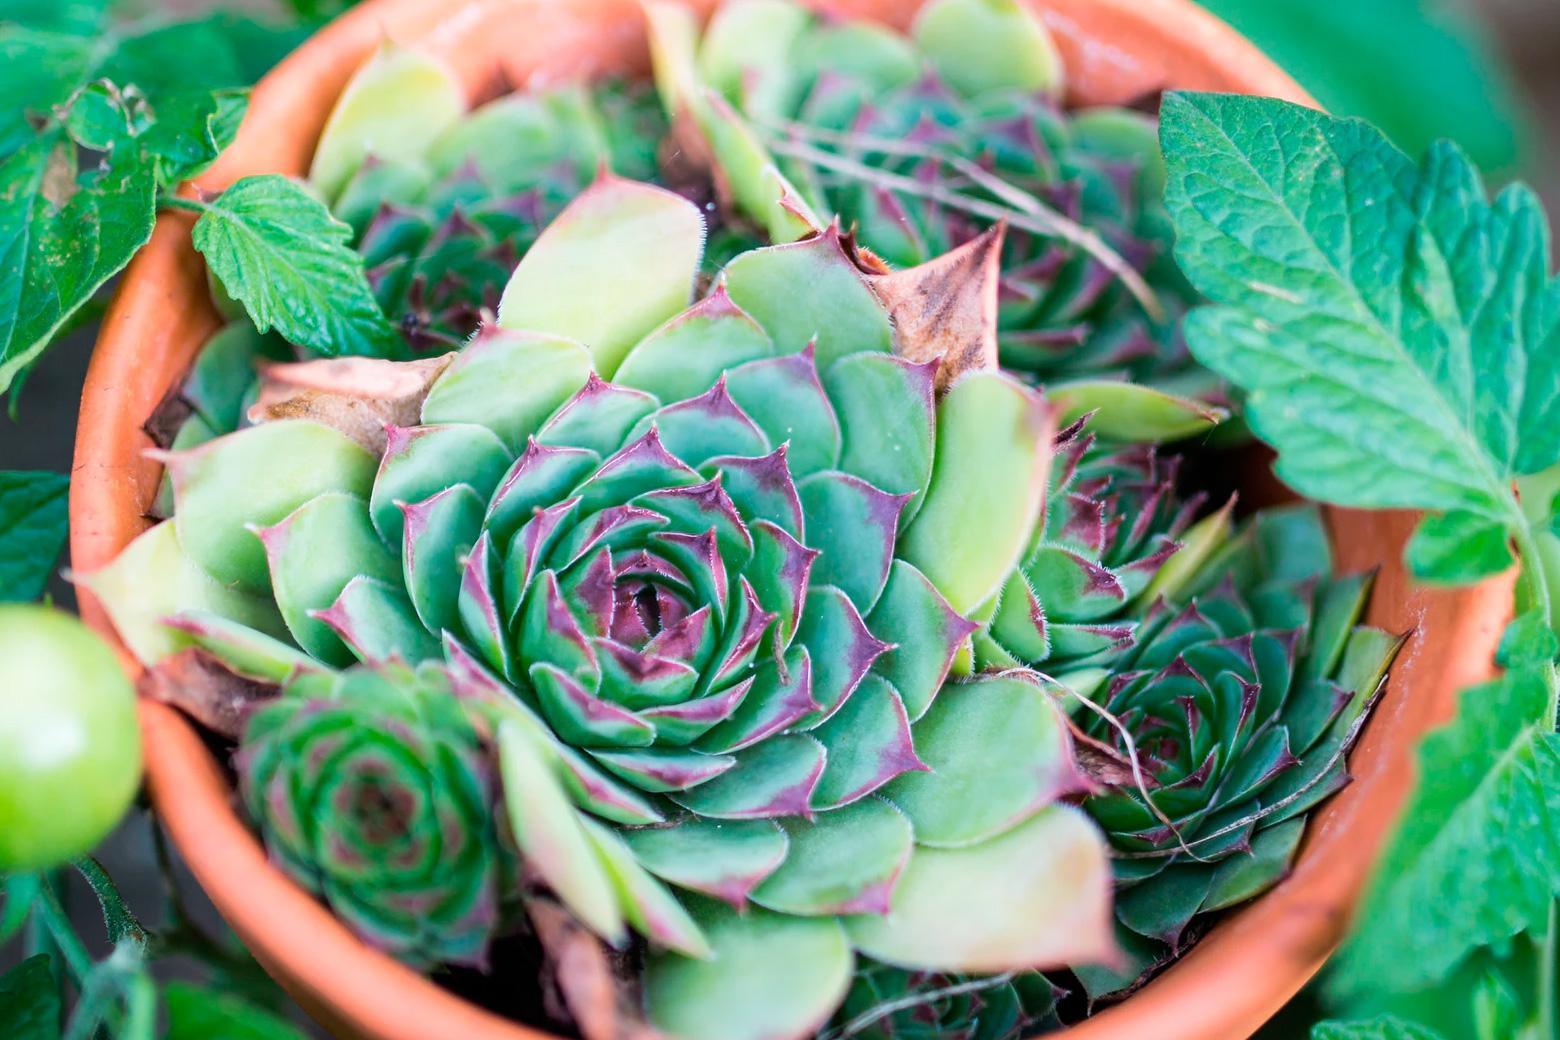 Color of the year inspiration: succulents come in beautiful shades of green